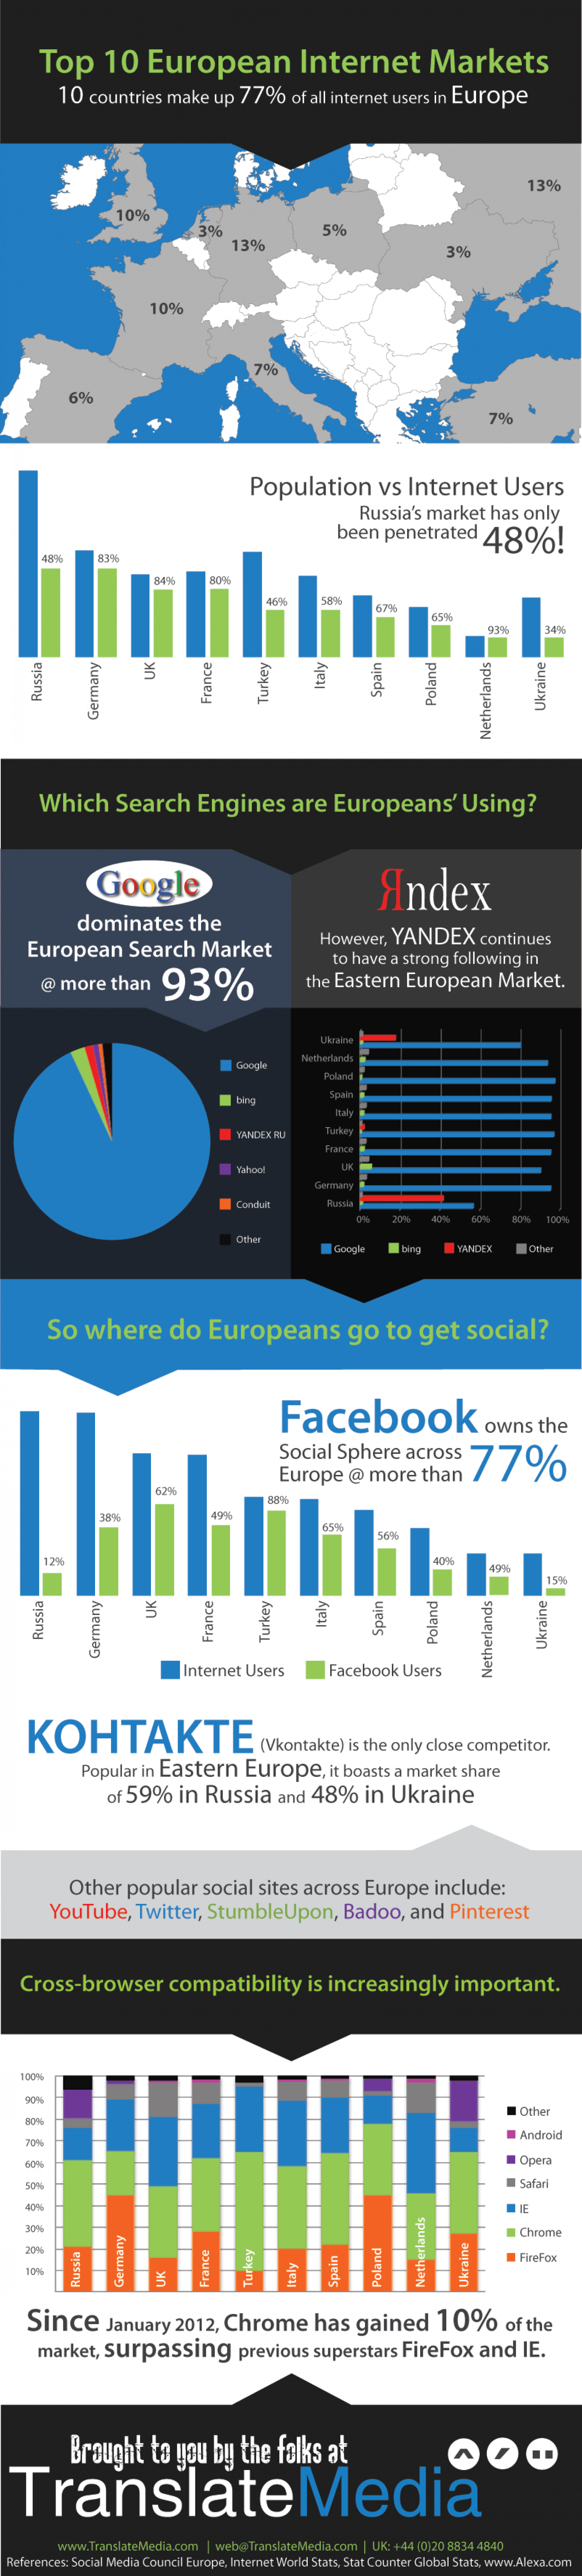 Top 10 European Internet Markets Infographic